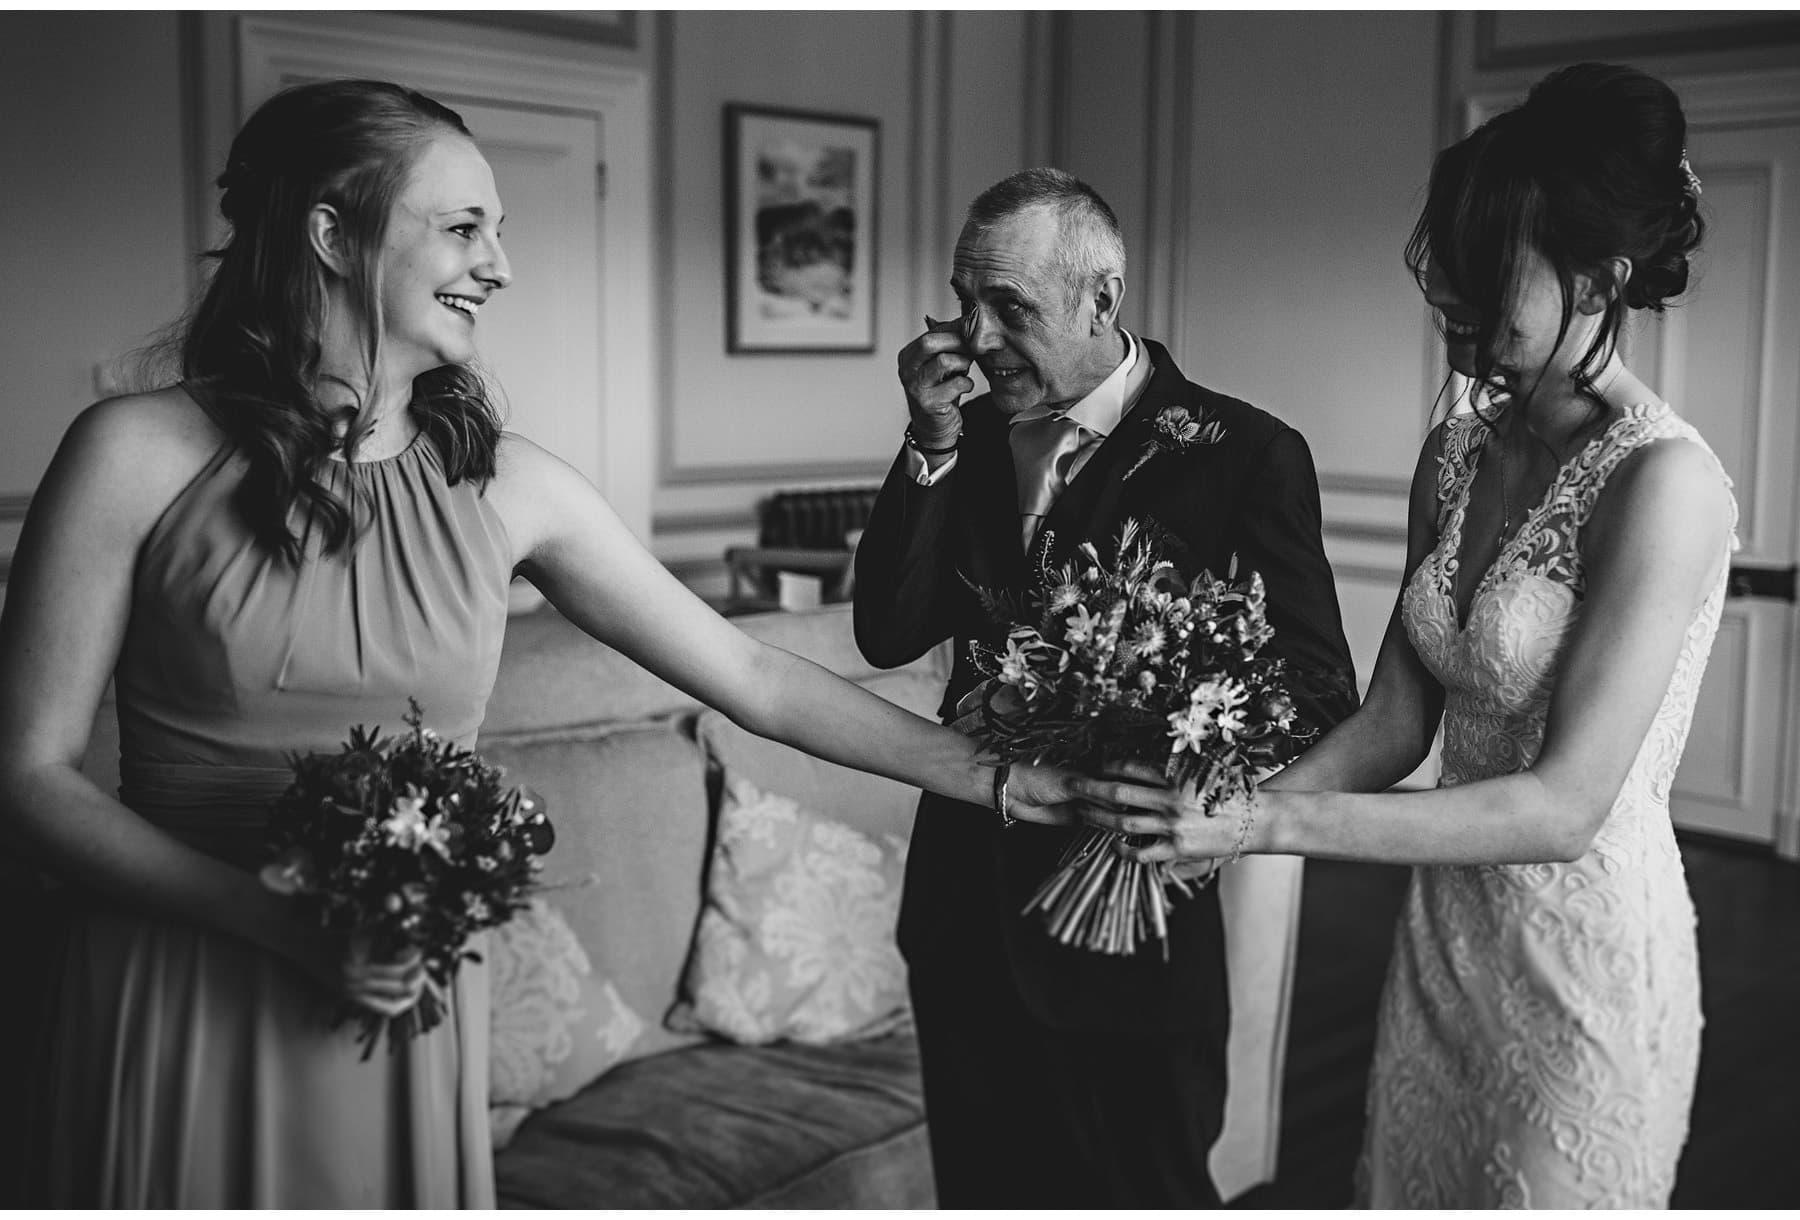 the father of the bride in tears as he sees his daughter